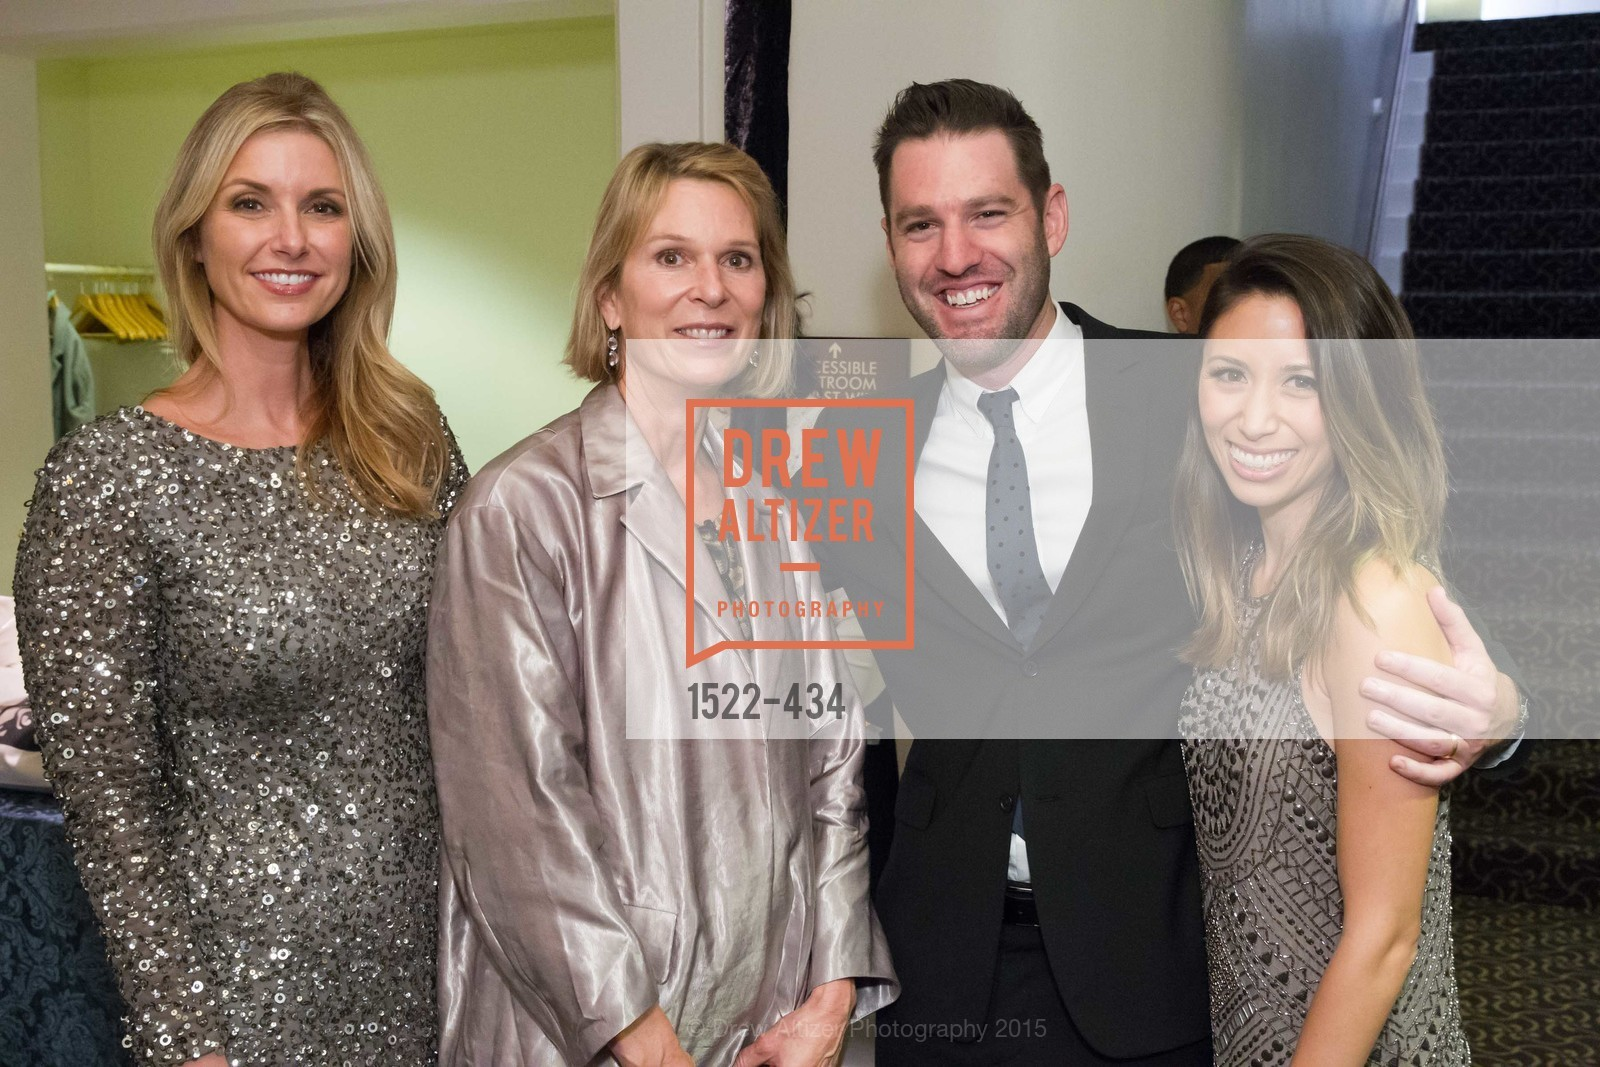 Molly Alexander, Jennifer Goff, Mark DiPaola, Jessica DiPaola, The Walt Disney Family Museum Fundraising Gala and Diane Disney Miller Lifetime Achievement Award, Golden Gate Club. 135 Fisher Loop in the Presidio, November 3rd, 2015,Drew Altizer, Drew Altizer Photography, full-service event agency, private events, San Francisco photographer, photographer California